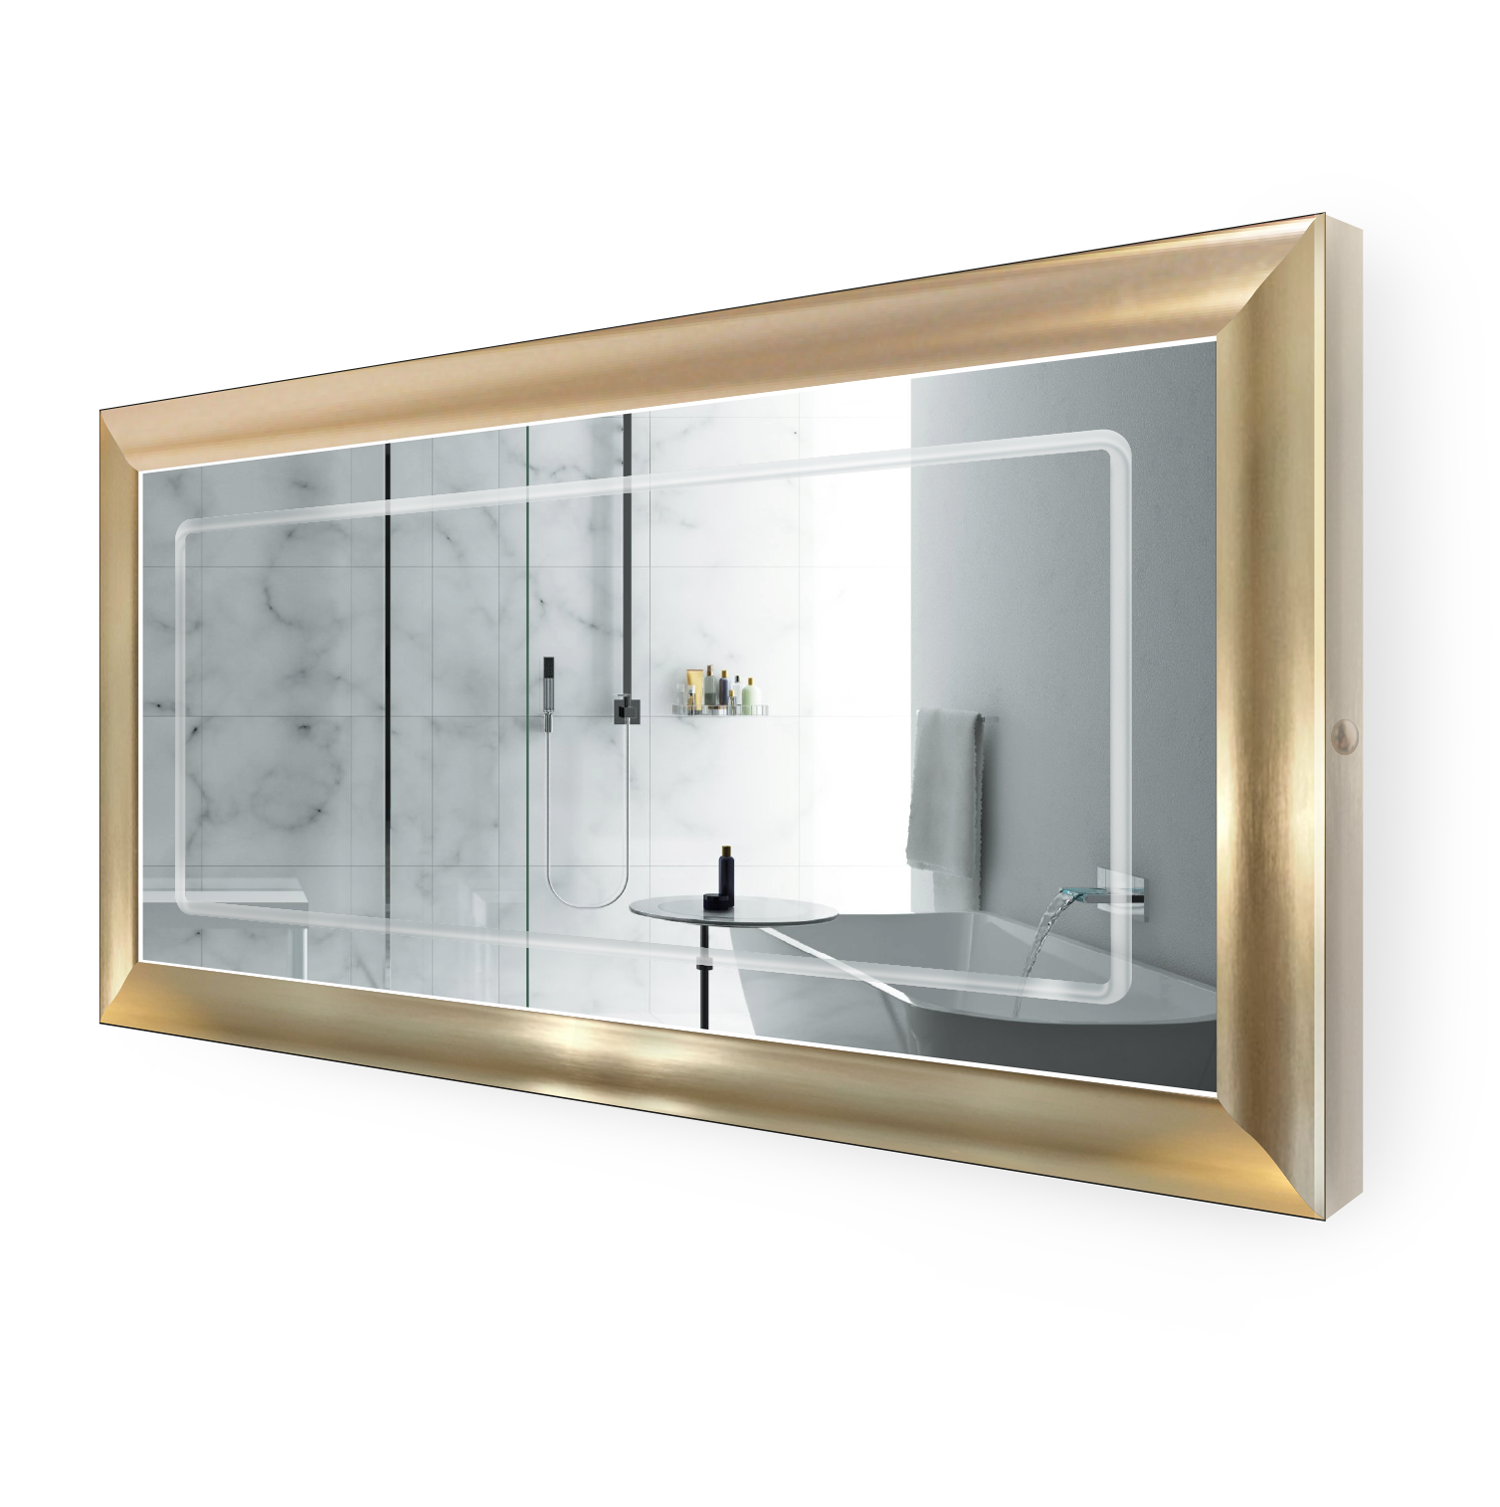 Led lighted 60 inch x 30 inch bathroom gold frame mirror for 60 inch framed mirror